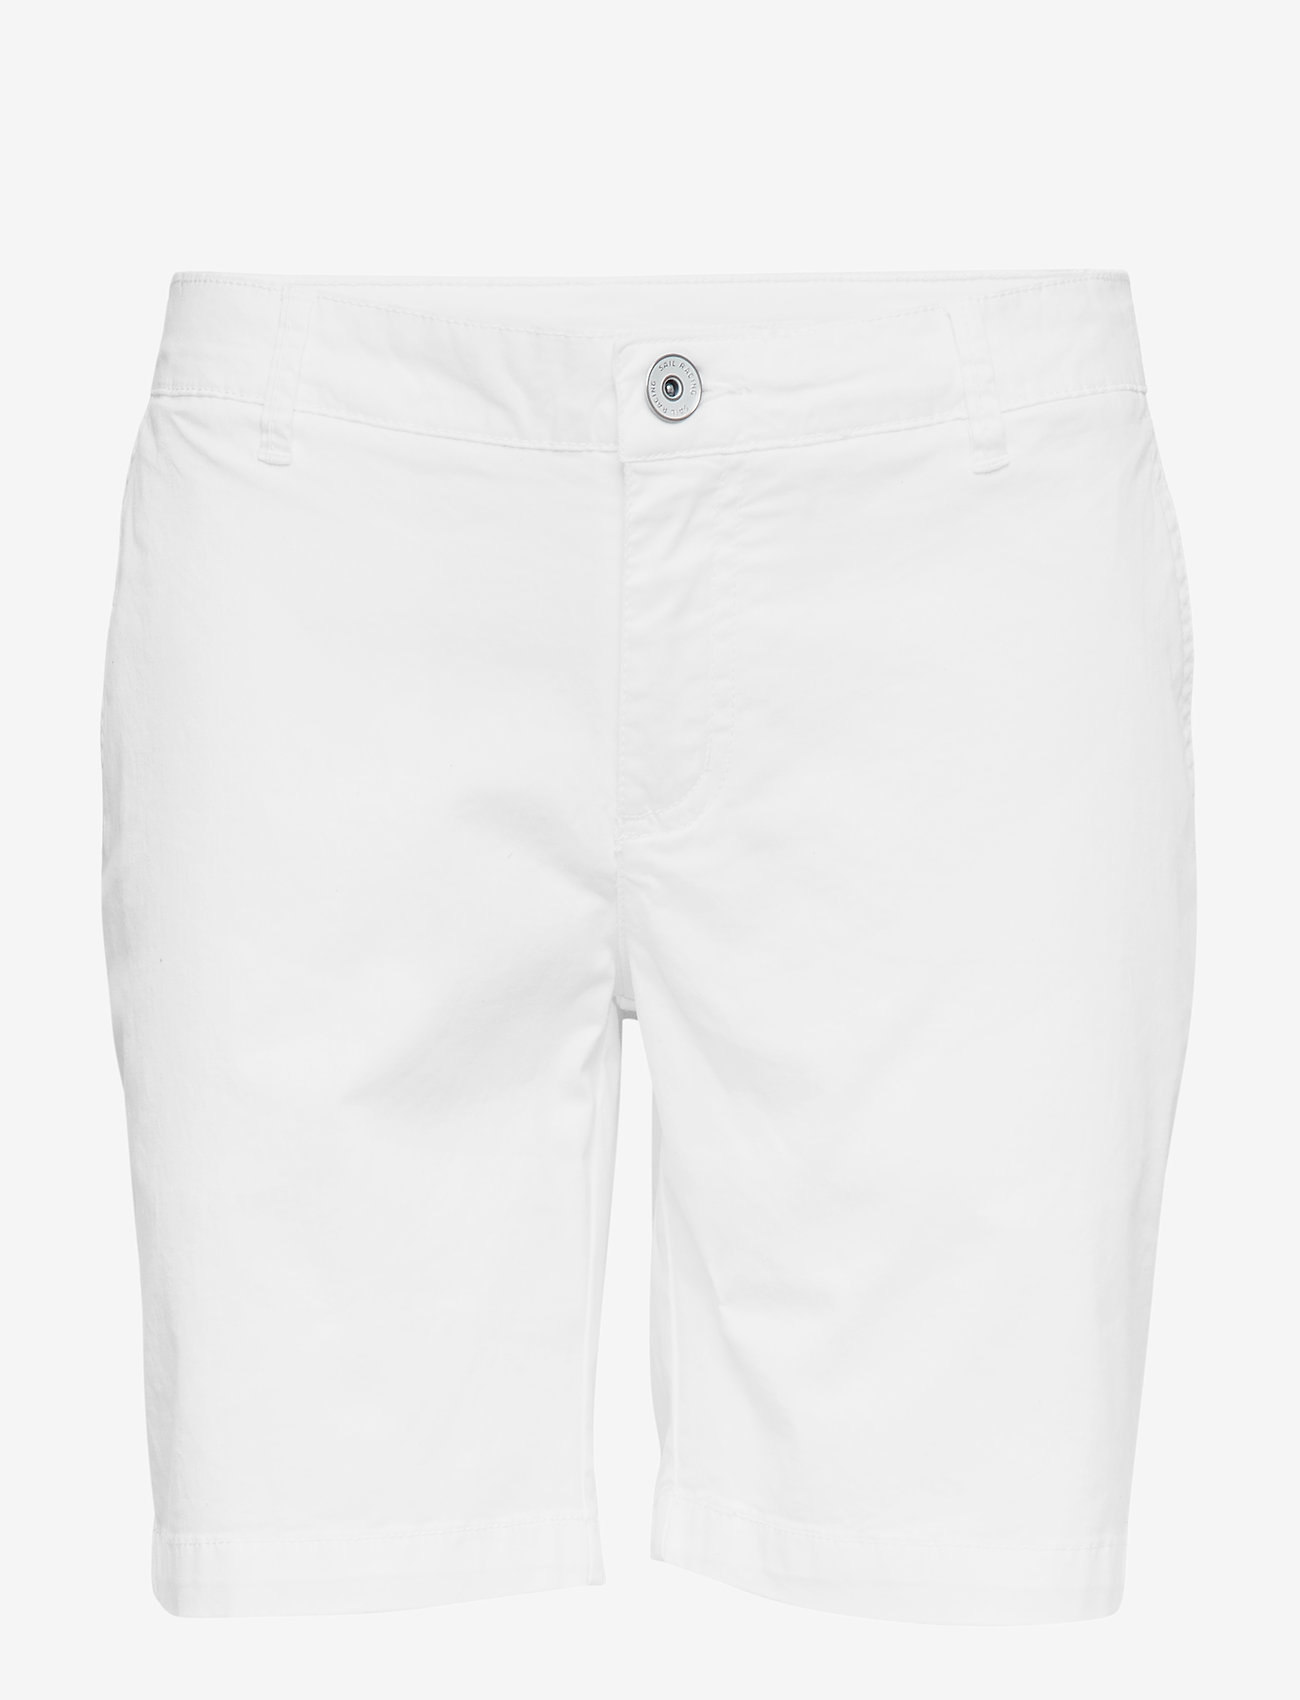 Sail Racing - W GALE CHINO SHORTS - chino shorts - white - 0